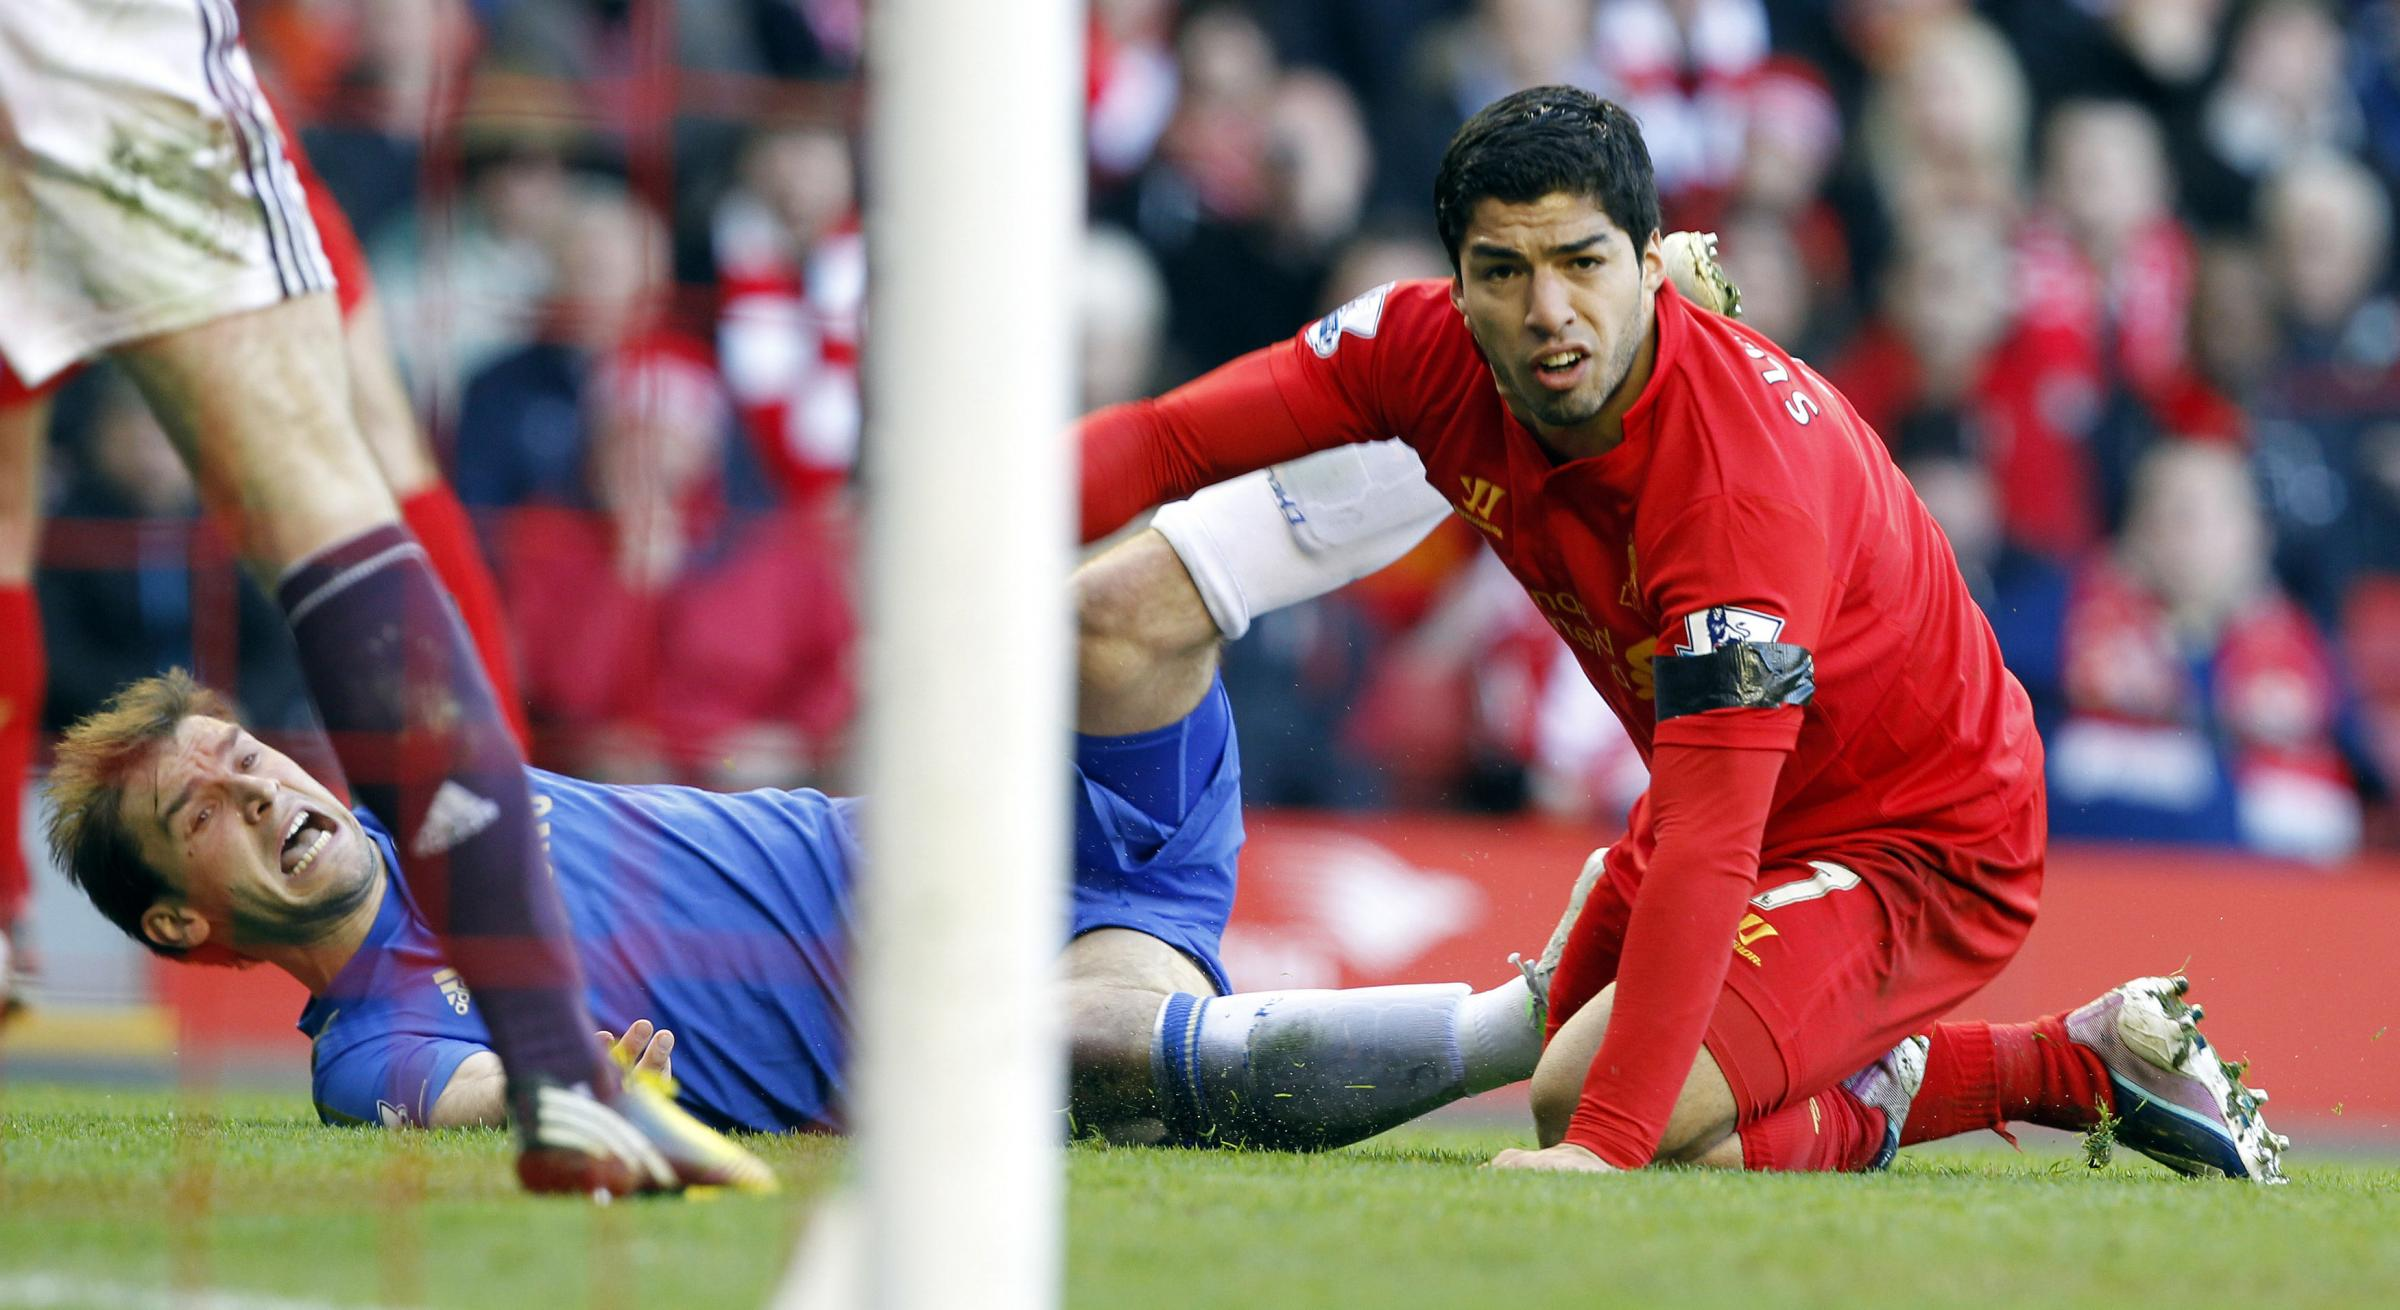 Luis Suarez, right, and Chelsea's Branislav Ivanovic on the ground after Suarez bit Ivanovic during the Barclays Premier League match at Anfield, Liverpool, in April last year